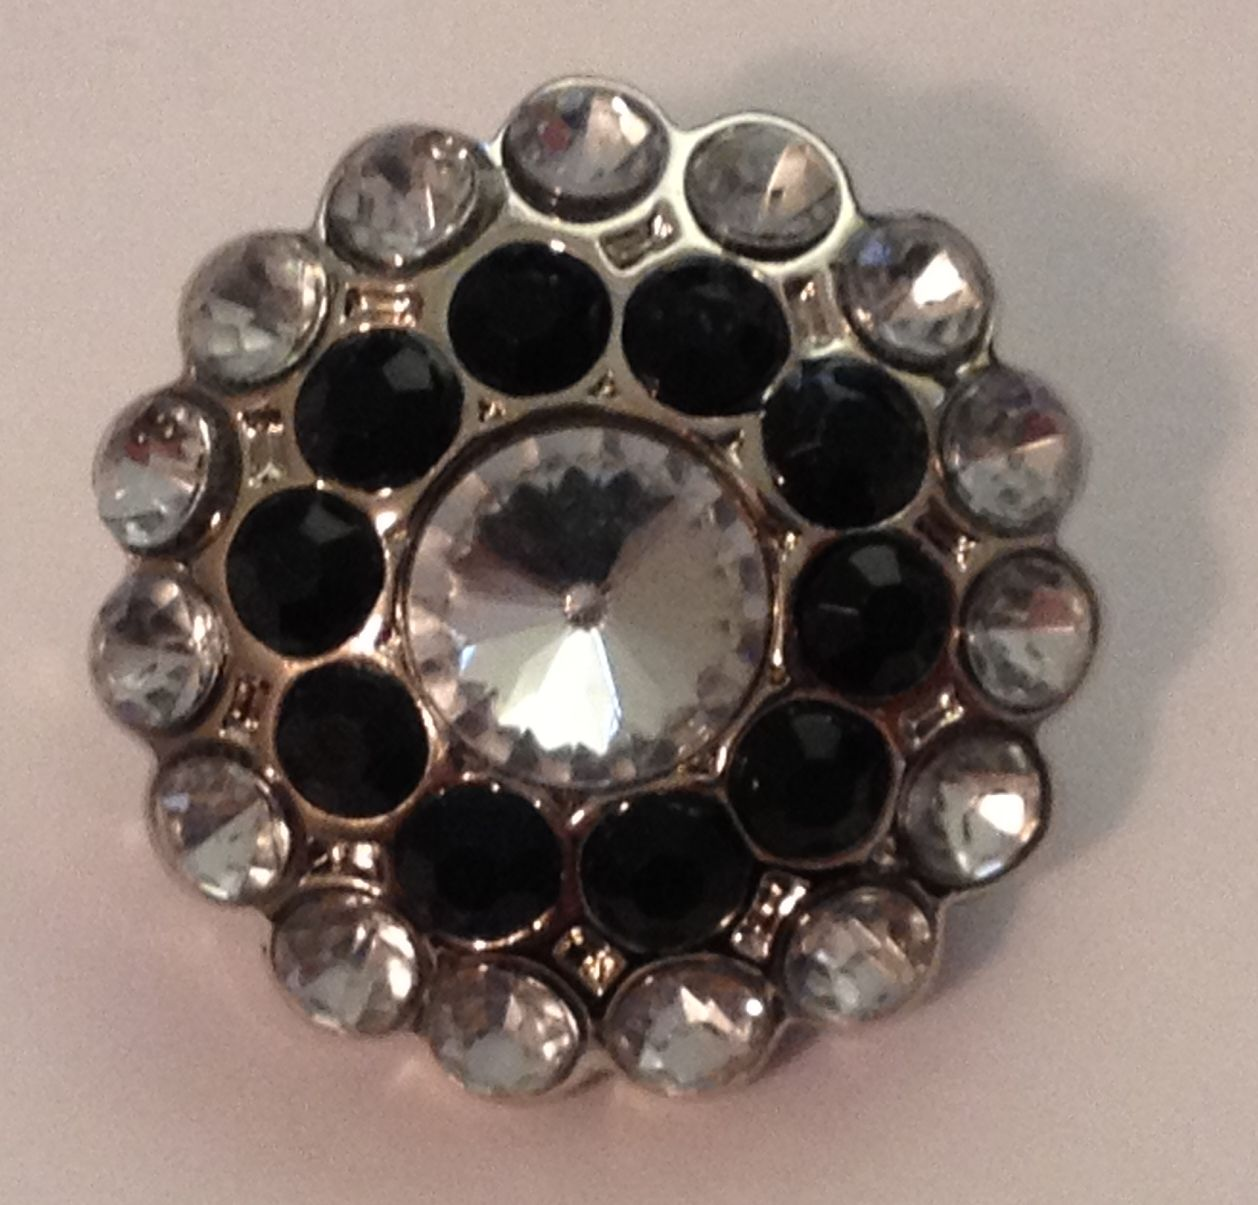 Cluster Blingy Button - Clear and Black - 1 piece